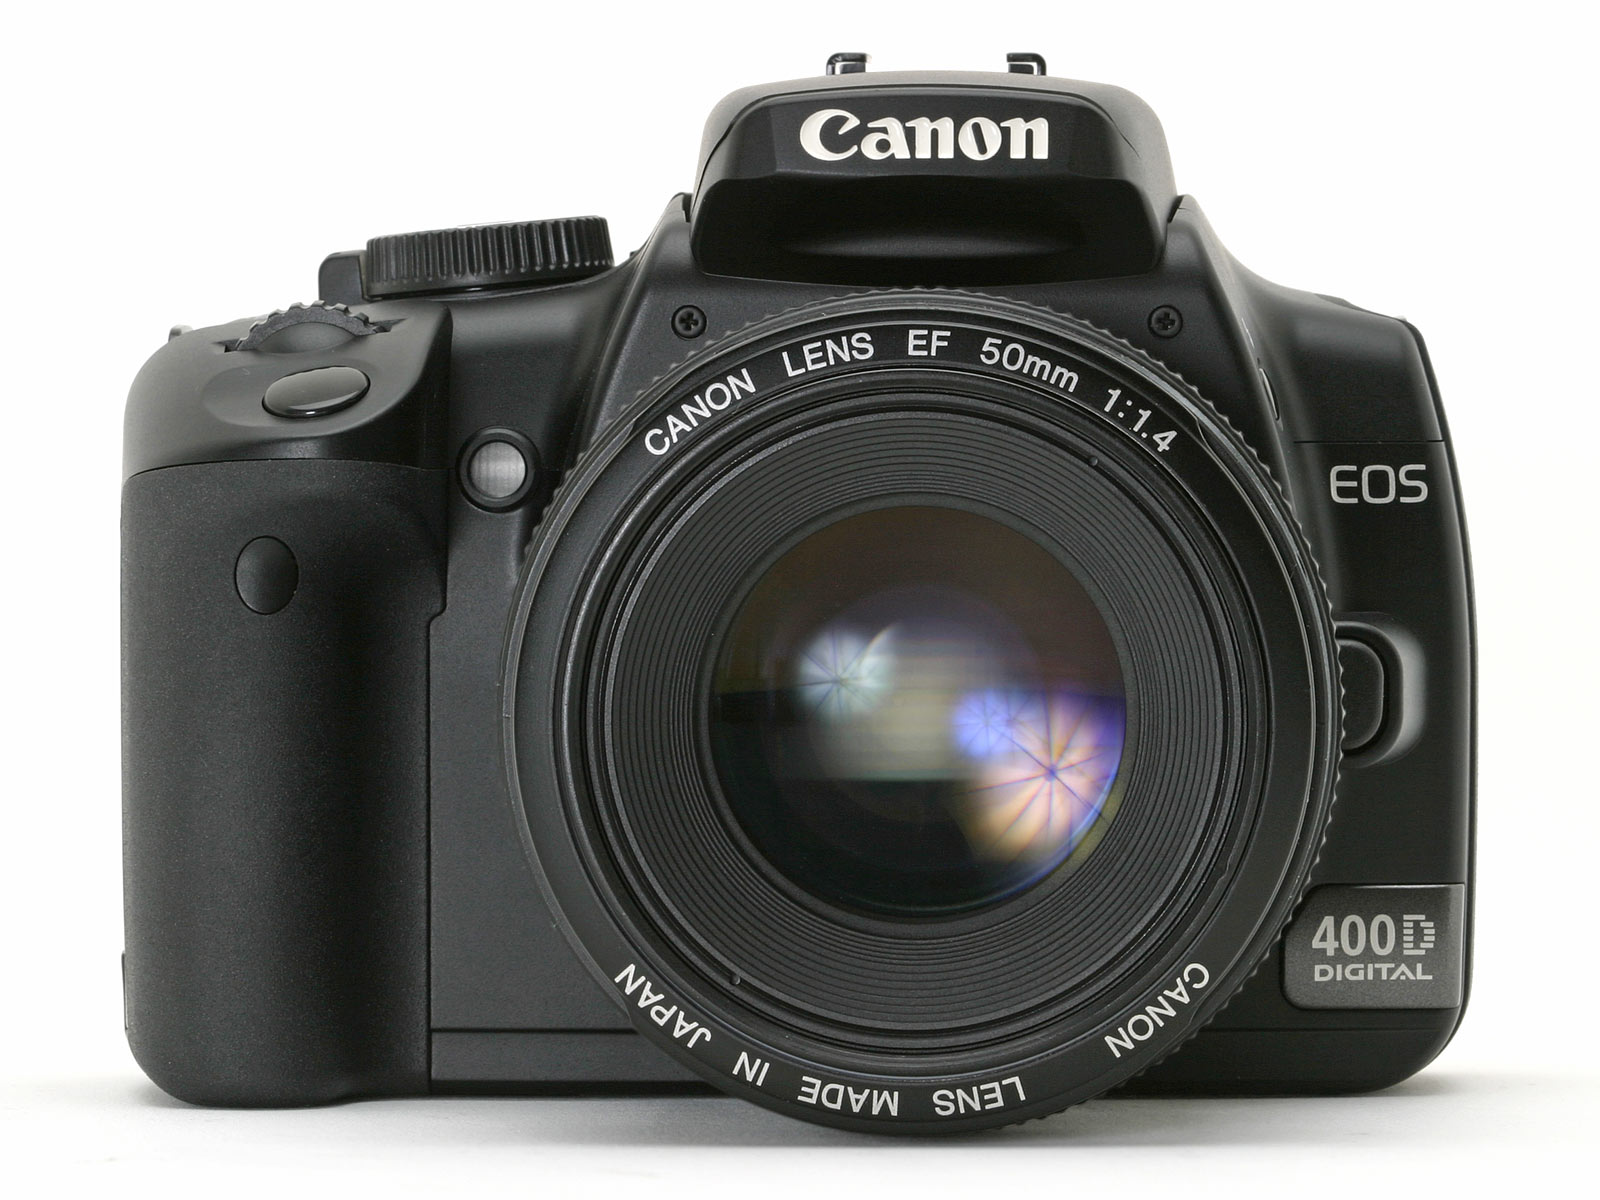 Canon EOS Digital Camera